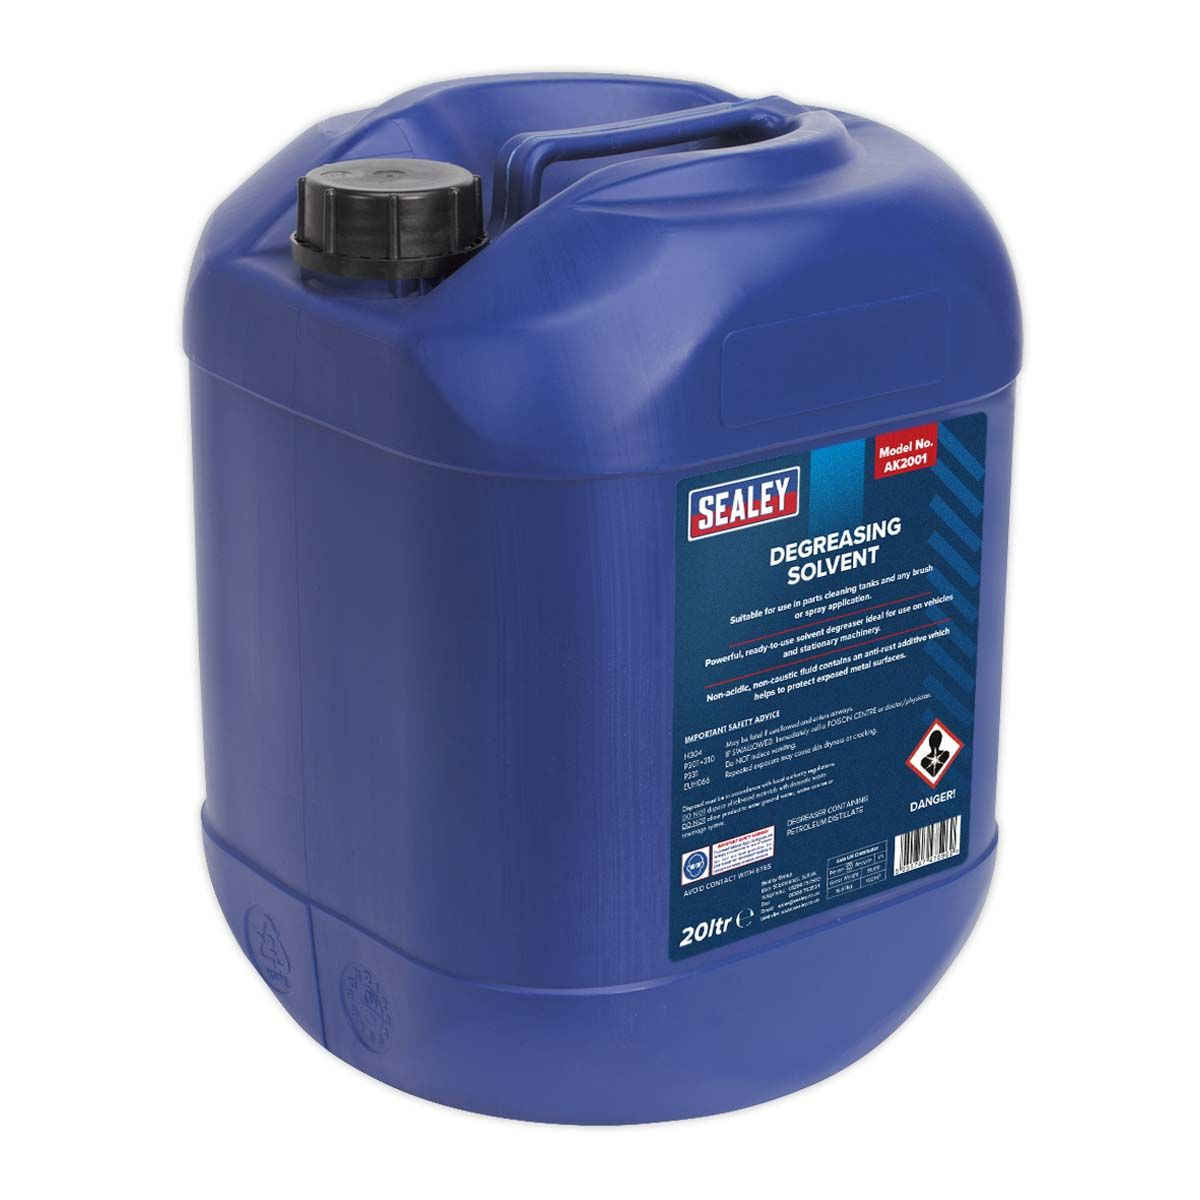 Sealey Degreasing Solvent 20L